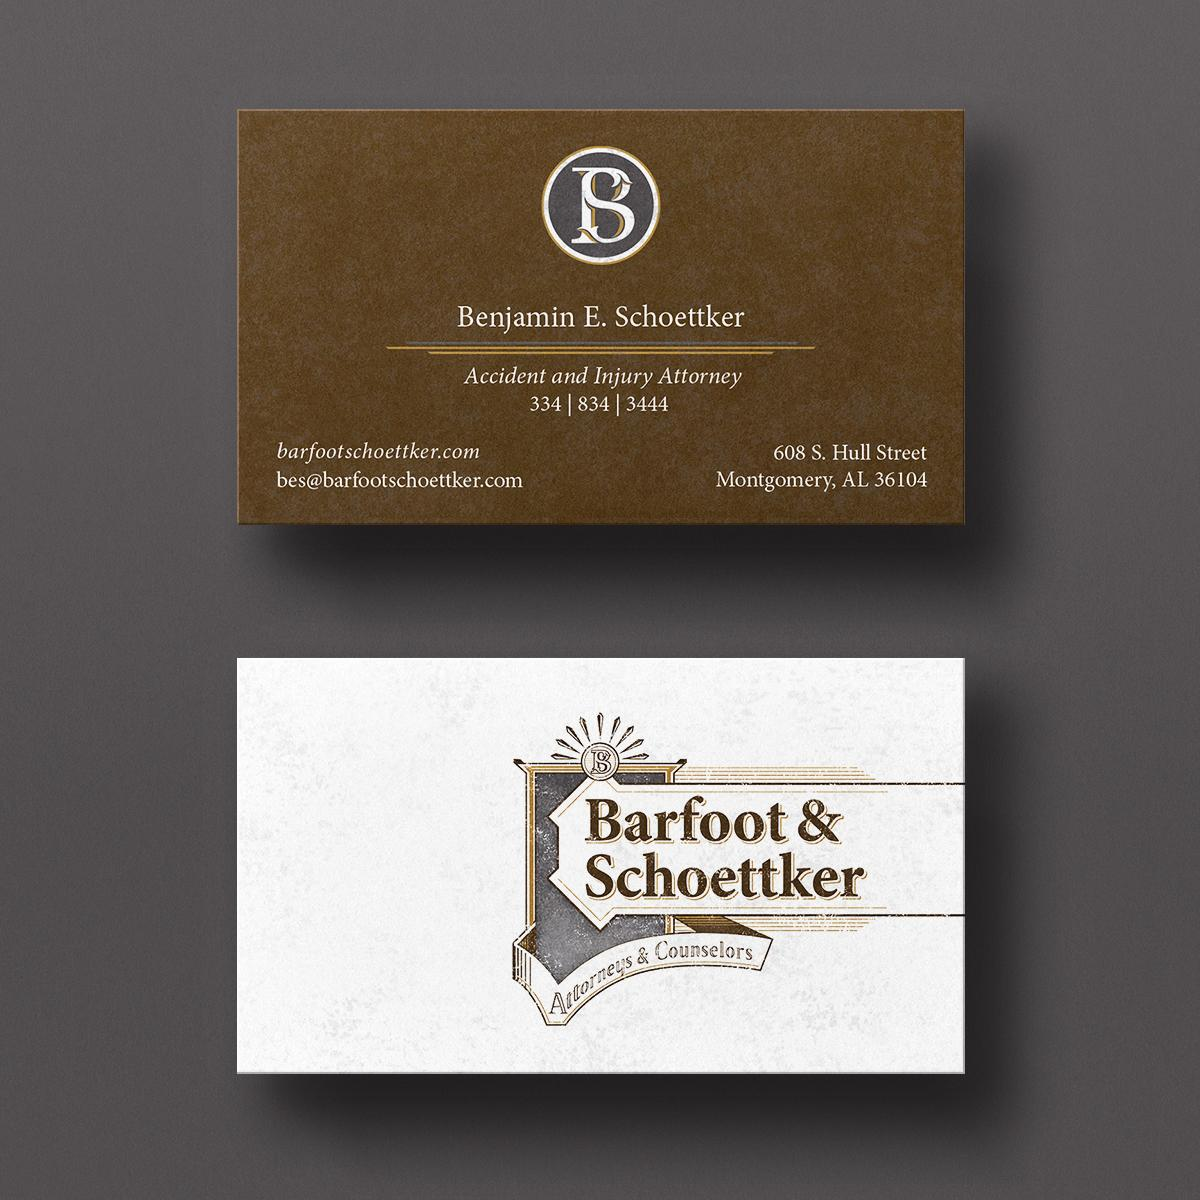 Barfoot and Schoettker Business Cards